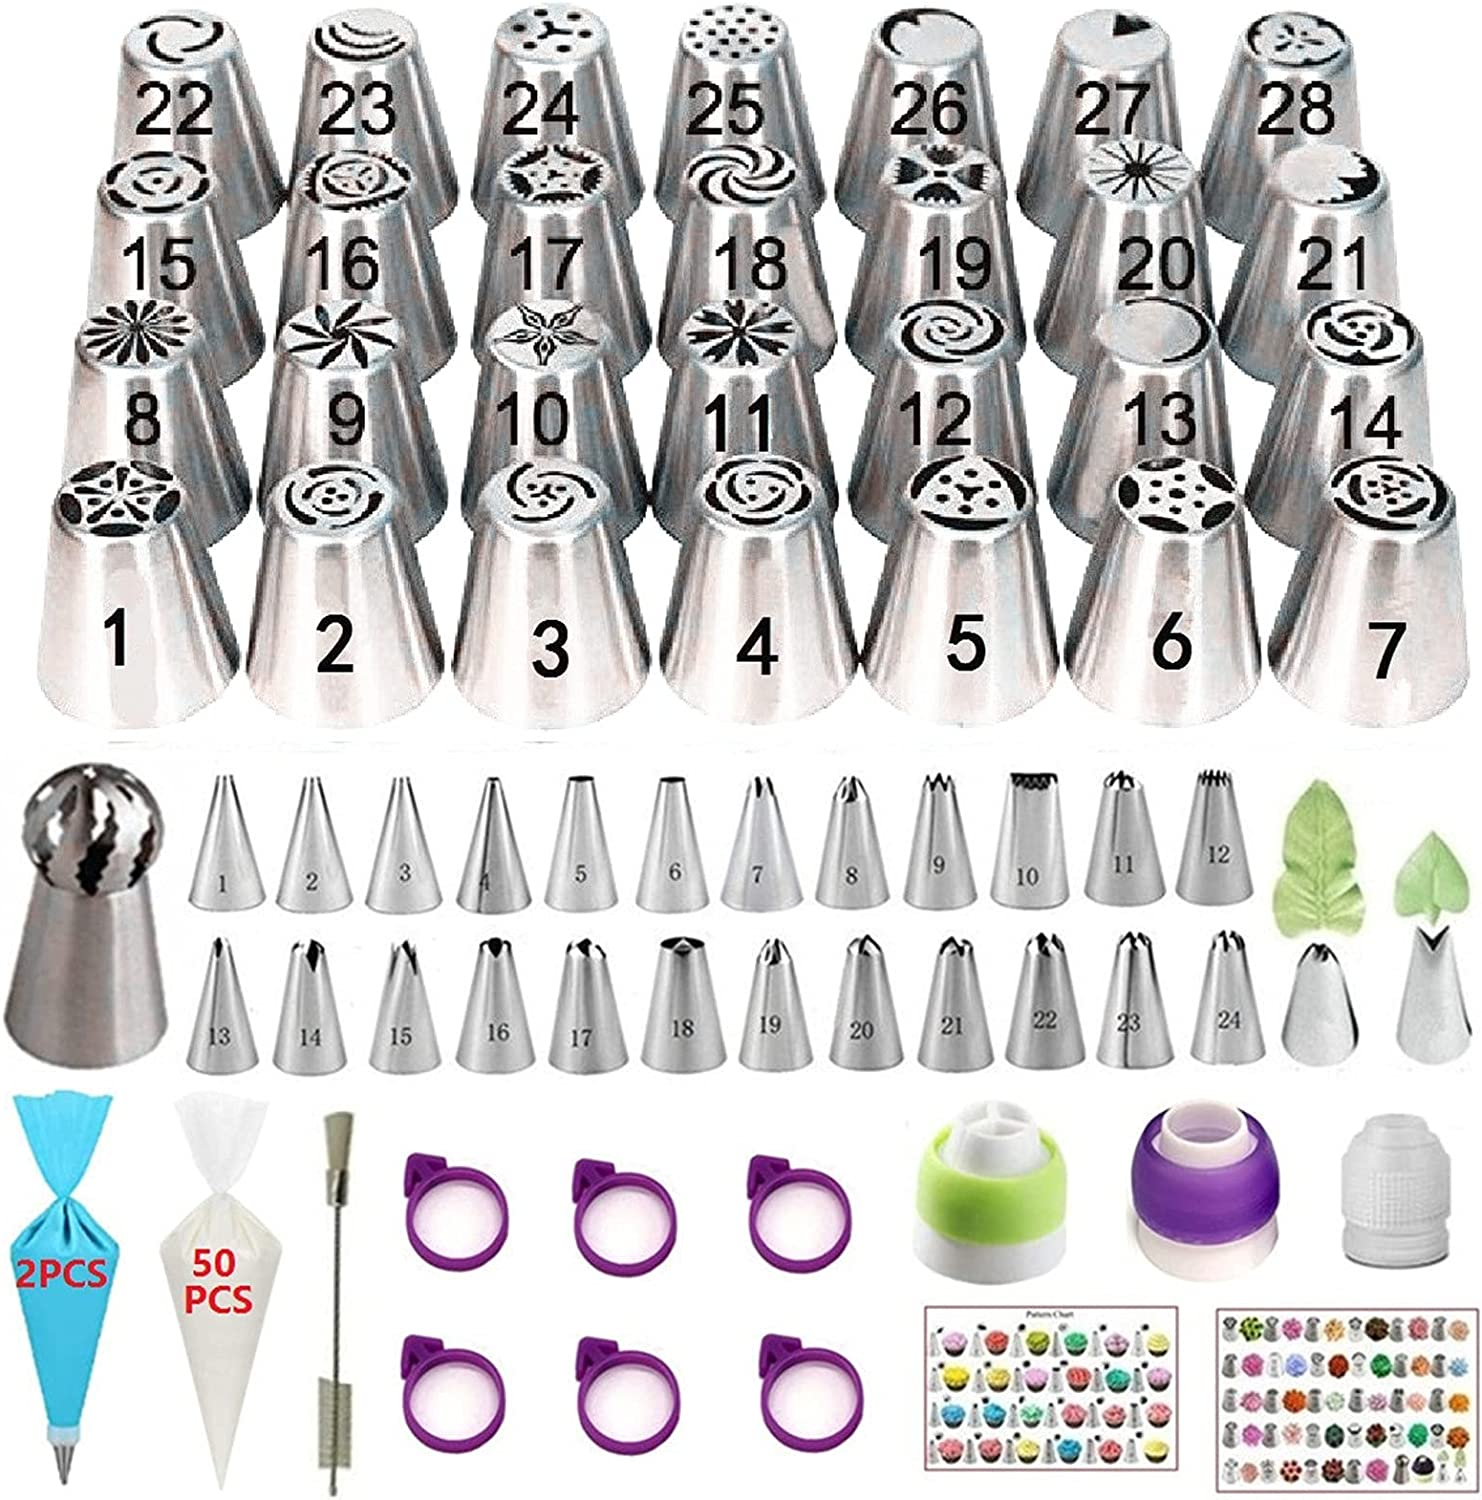 YOQXHY 120 Pcs Russian Piping Tips Set with 28 Numbered Russian Tips,24 Numbered Icing Tips,1 Ball Tip,2 Leaf Tips,Pattern Chart,52 Pastry Bags,3 Couplers,6 Bag Ties for Cake Decorating